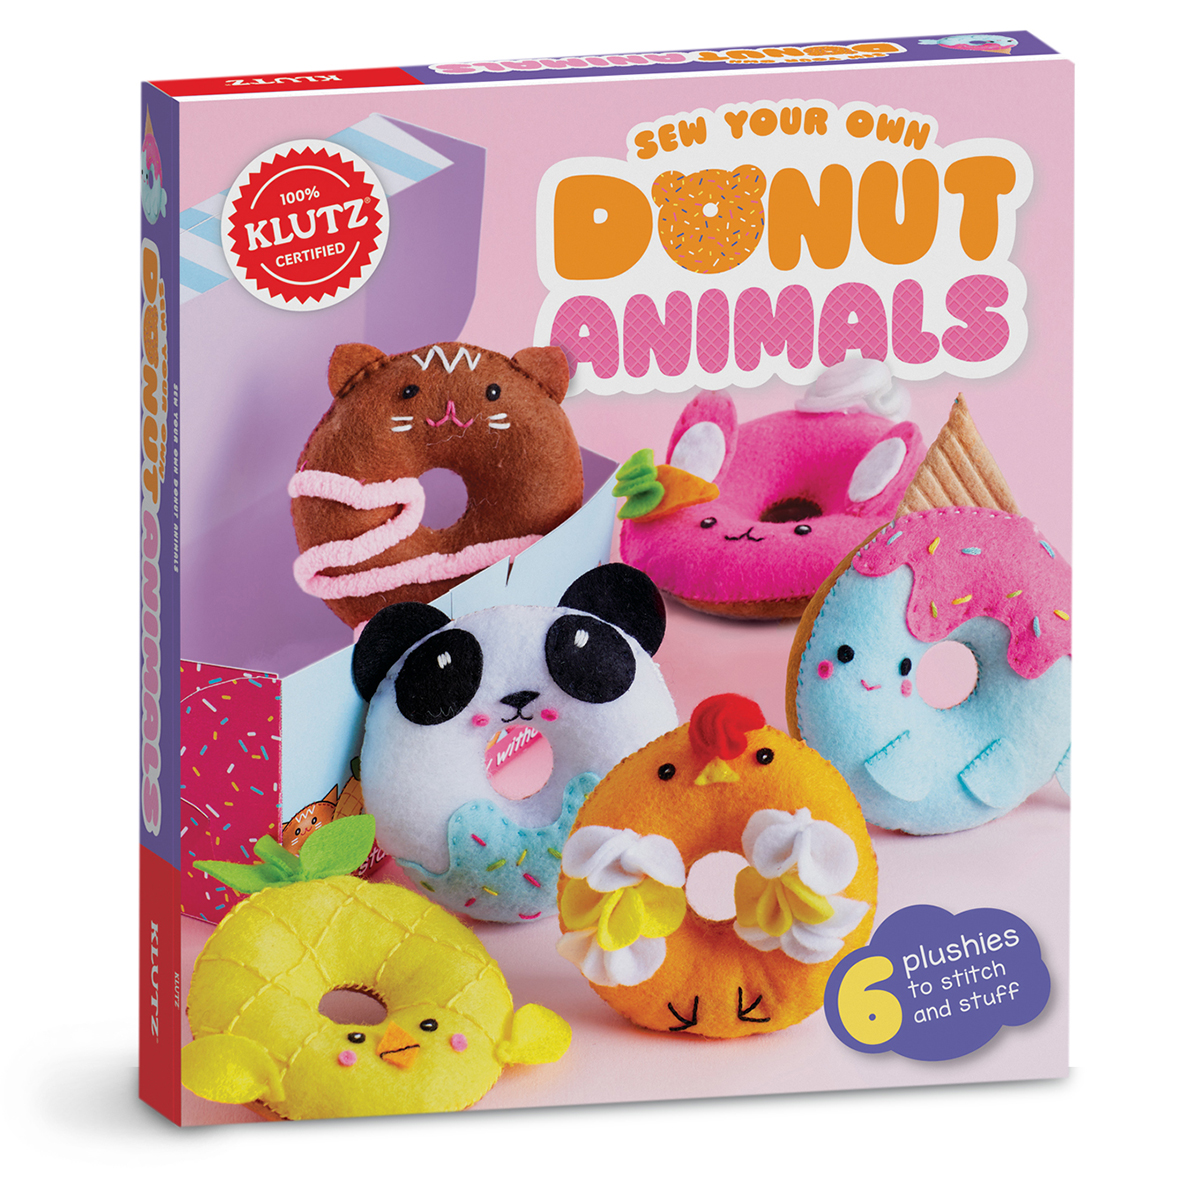 Klutz® Sew Your Own Donut Animals